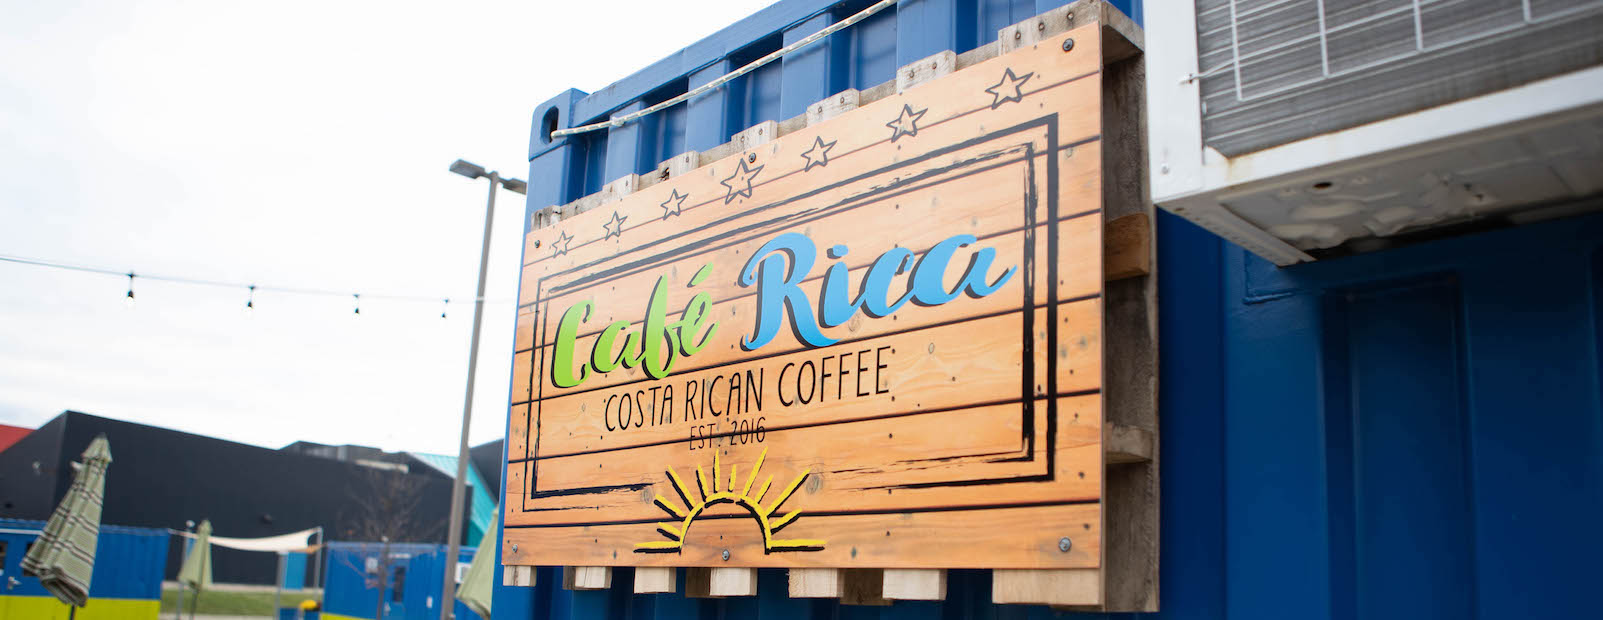 Cafe Rica <span class='image-credits'>Erik McCloud</span>